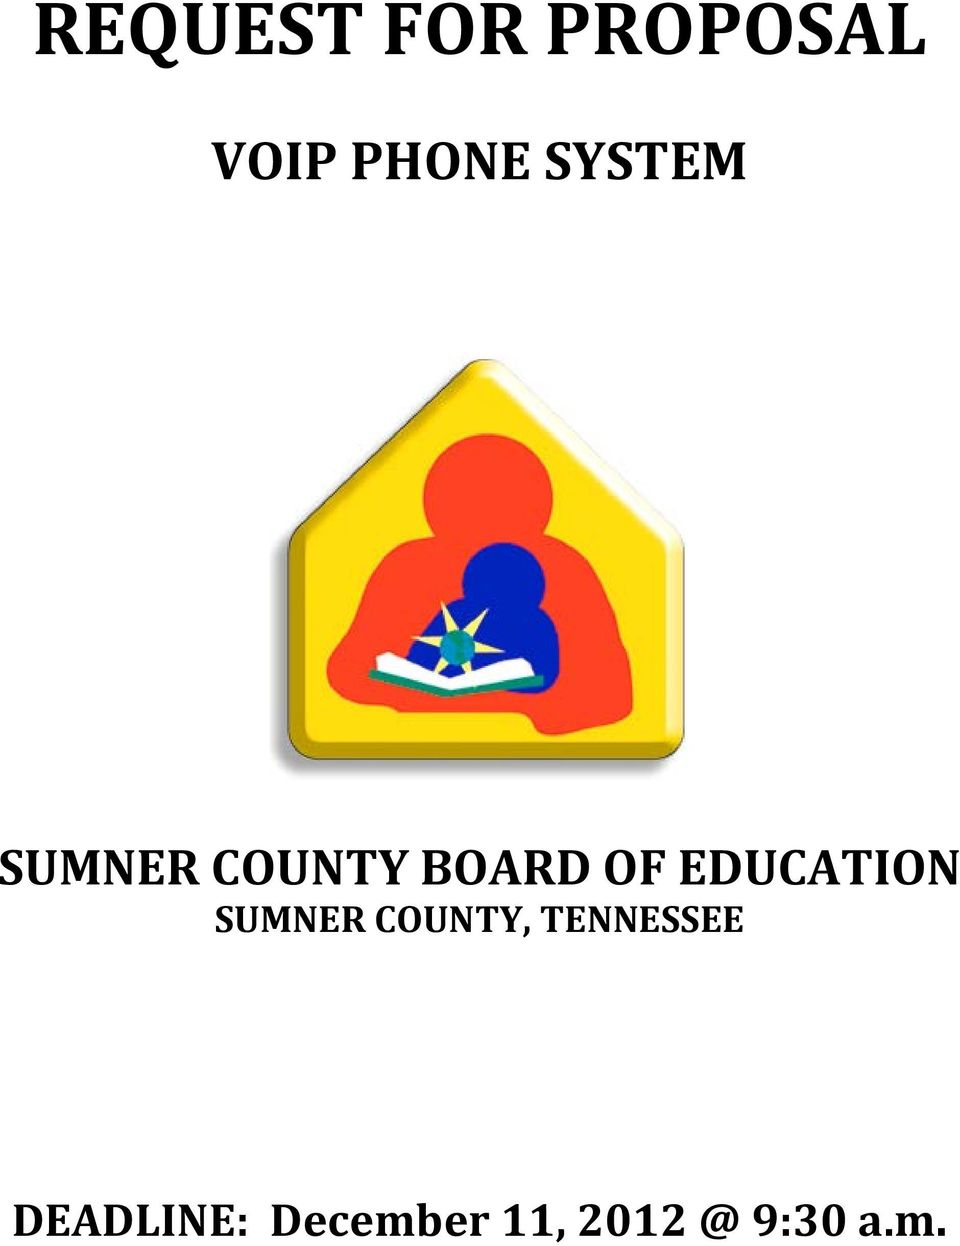 EDUCATION SUMNER COUNTY,